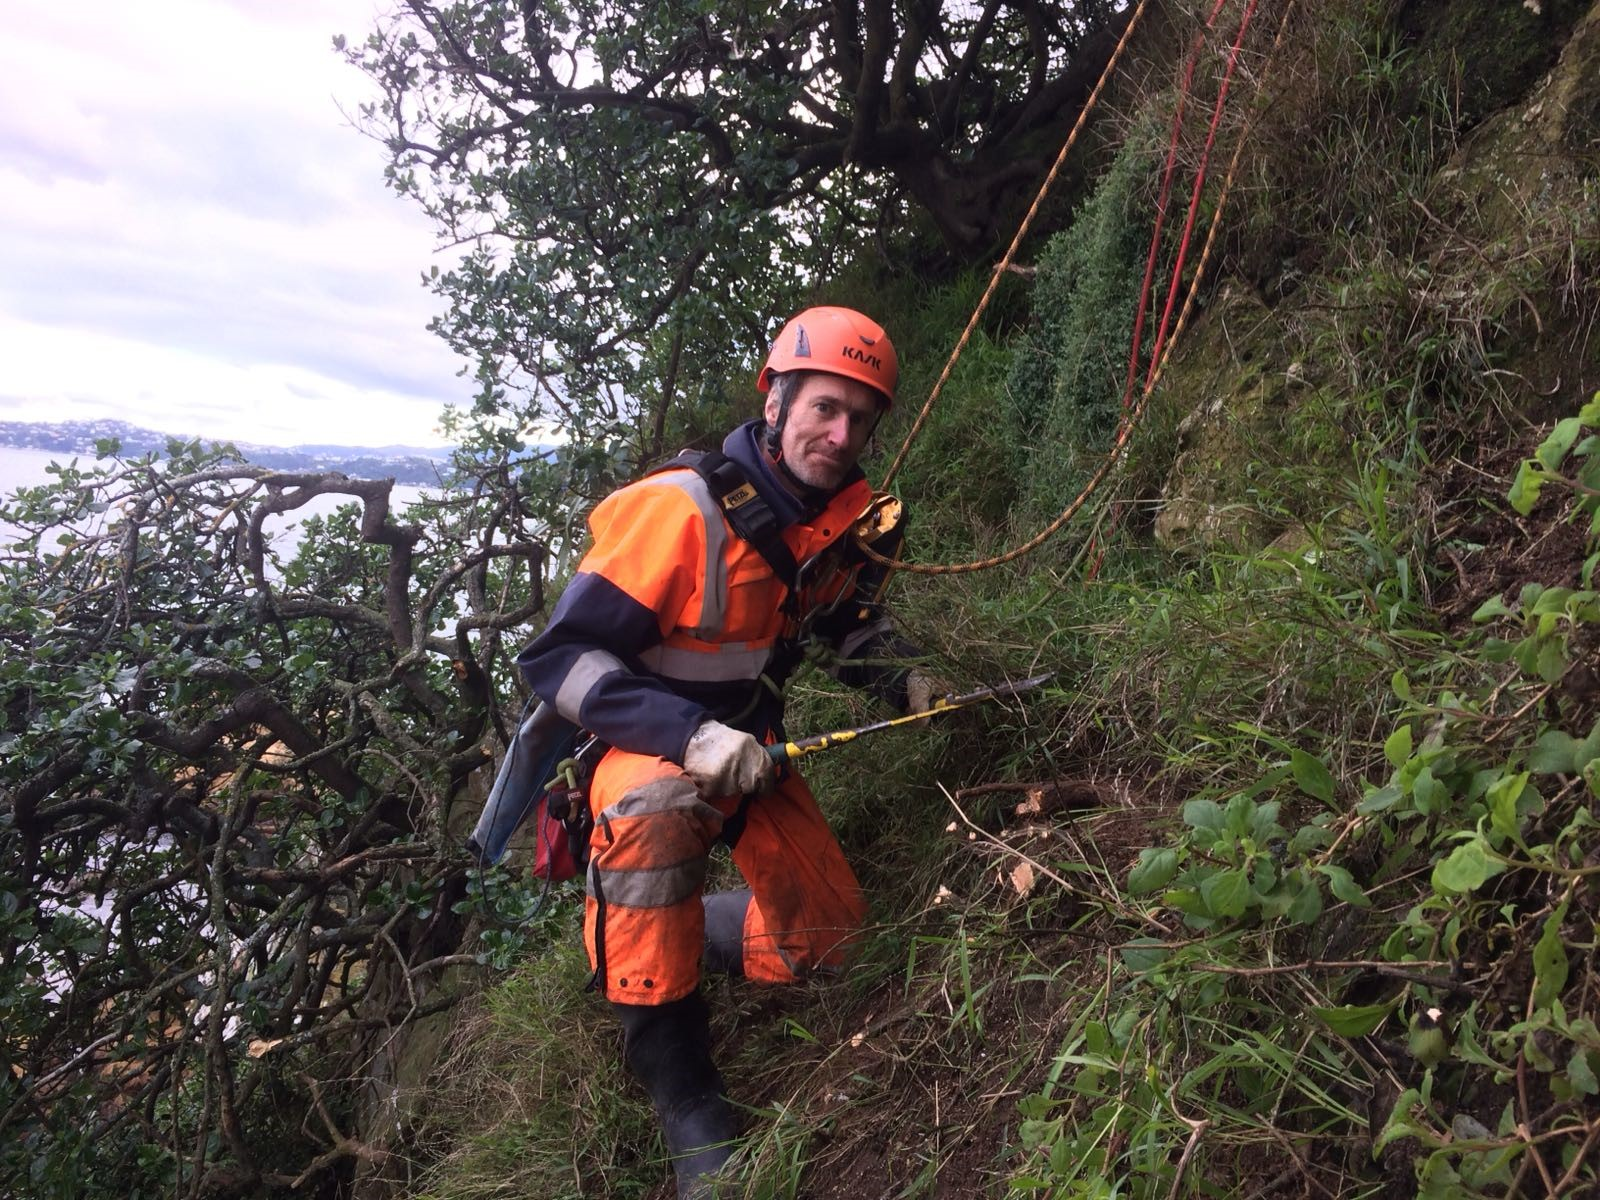 Warding off the weeds on Mākaro island